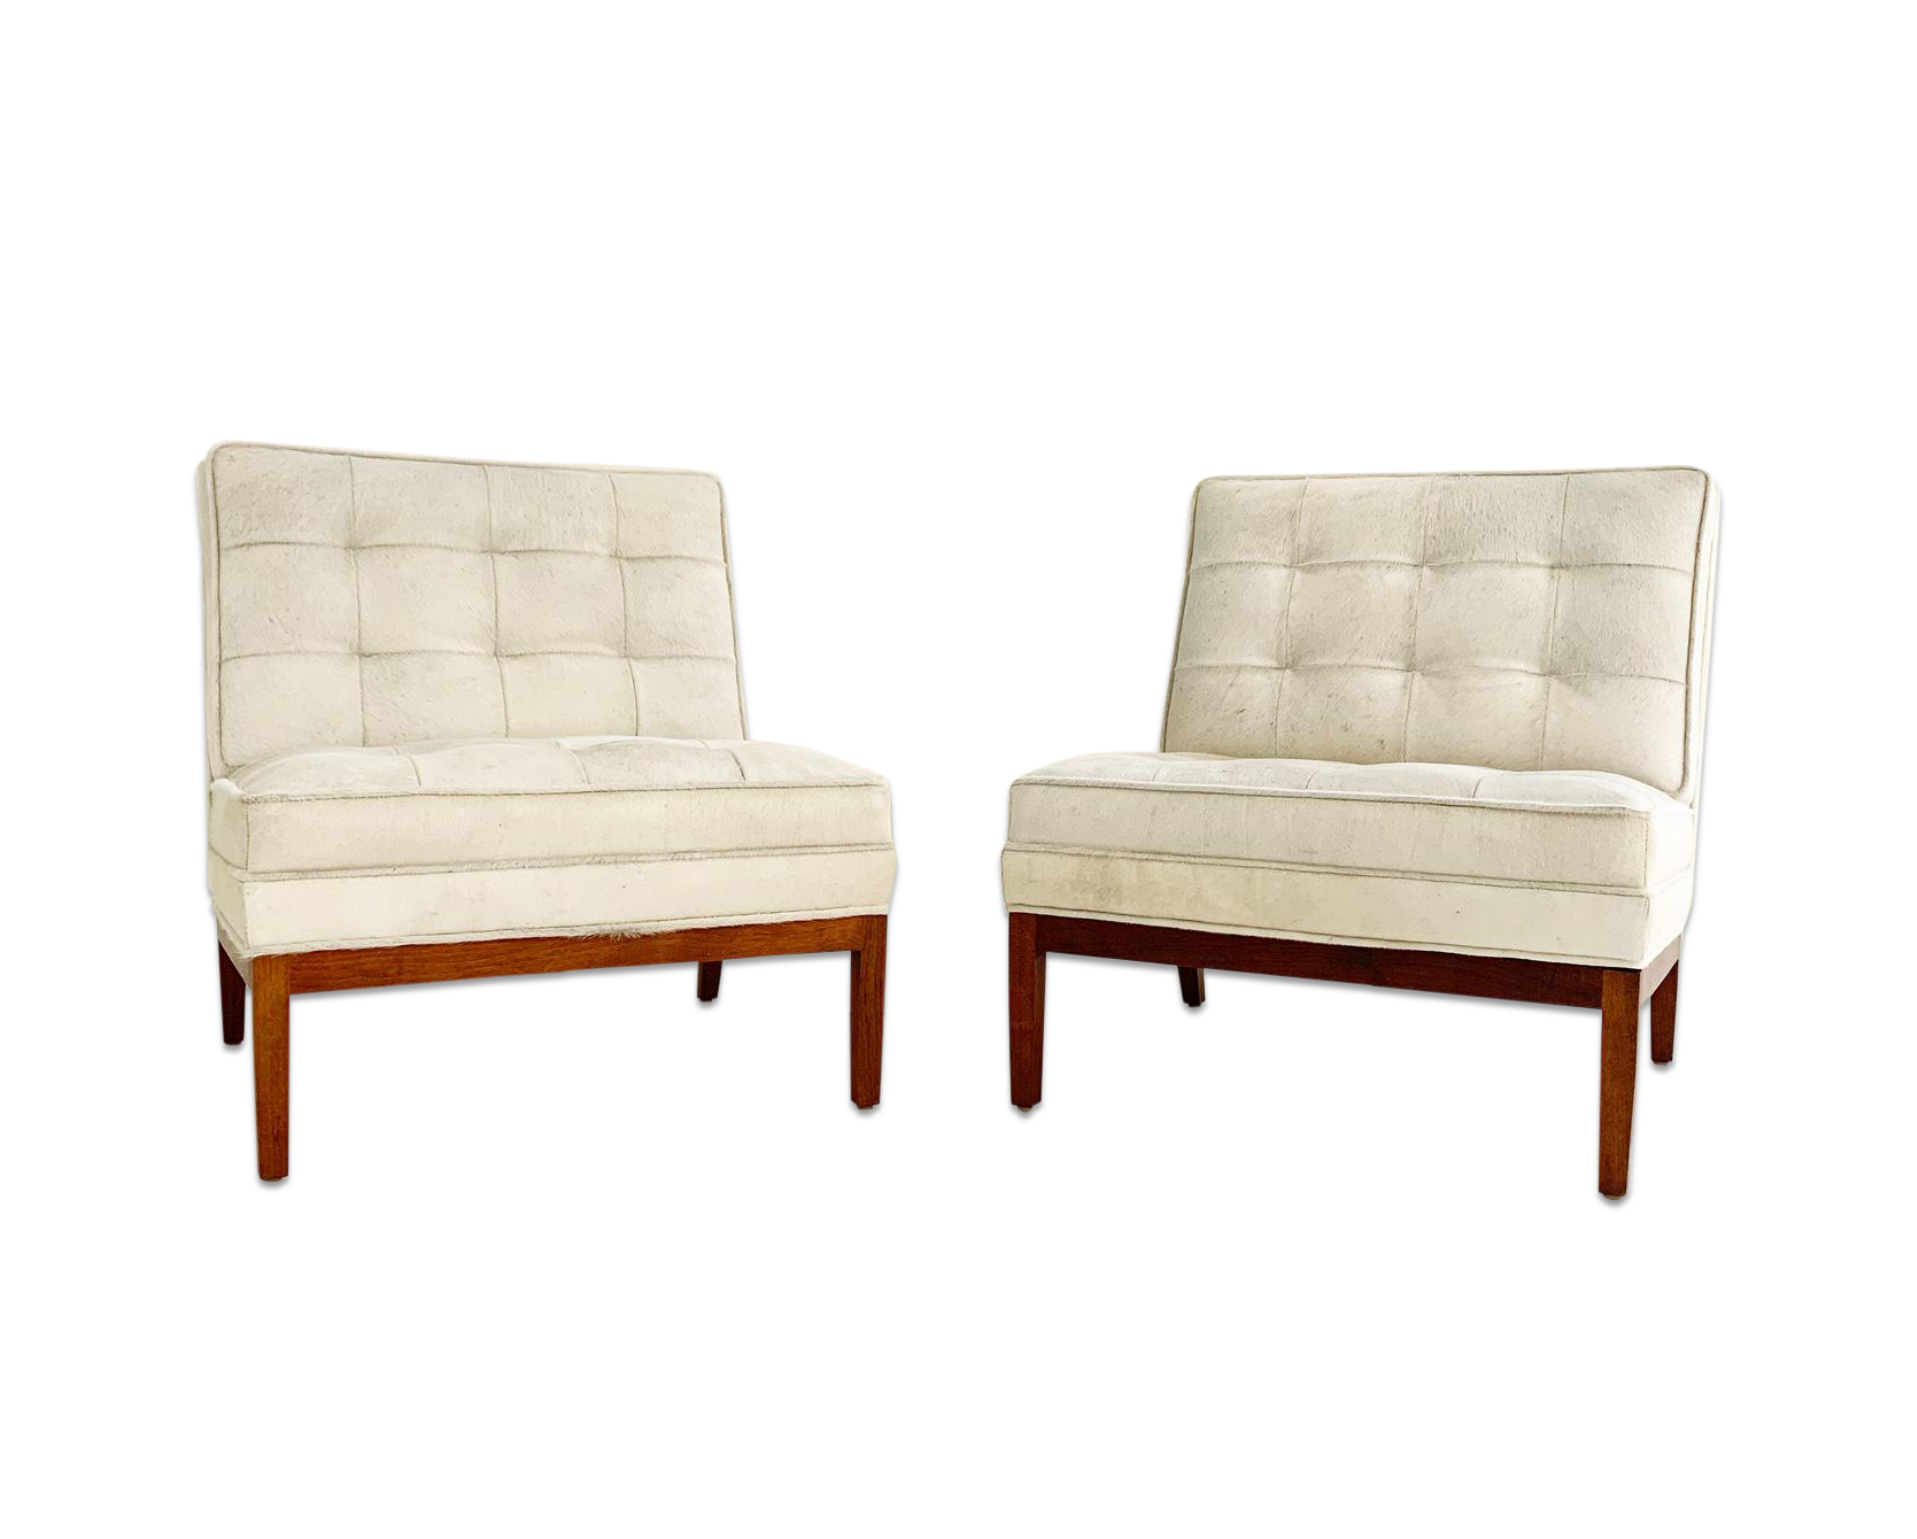 Lounge Chairs in Brazilian Cowhide, pair